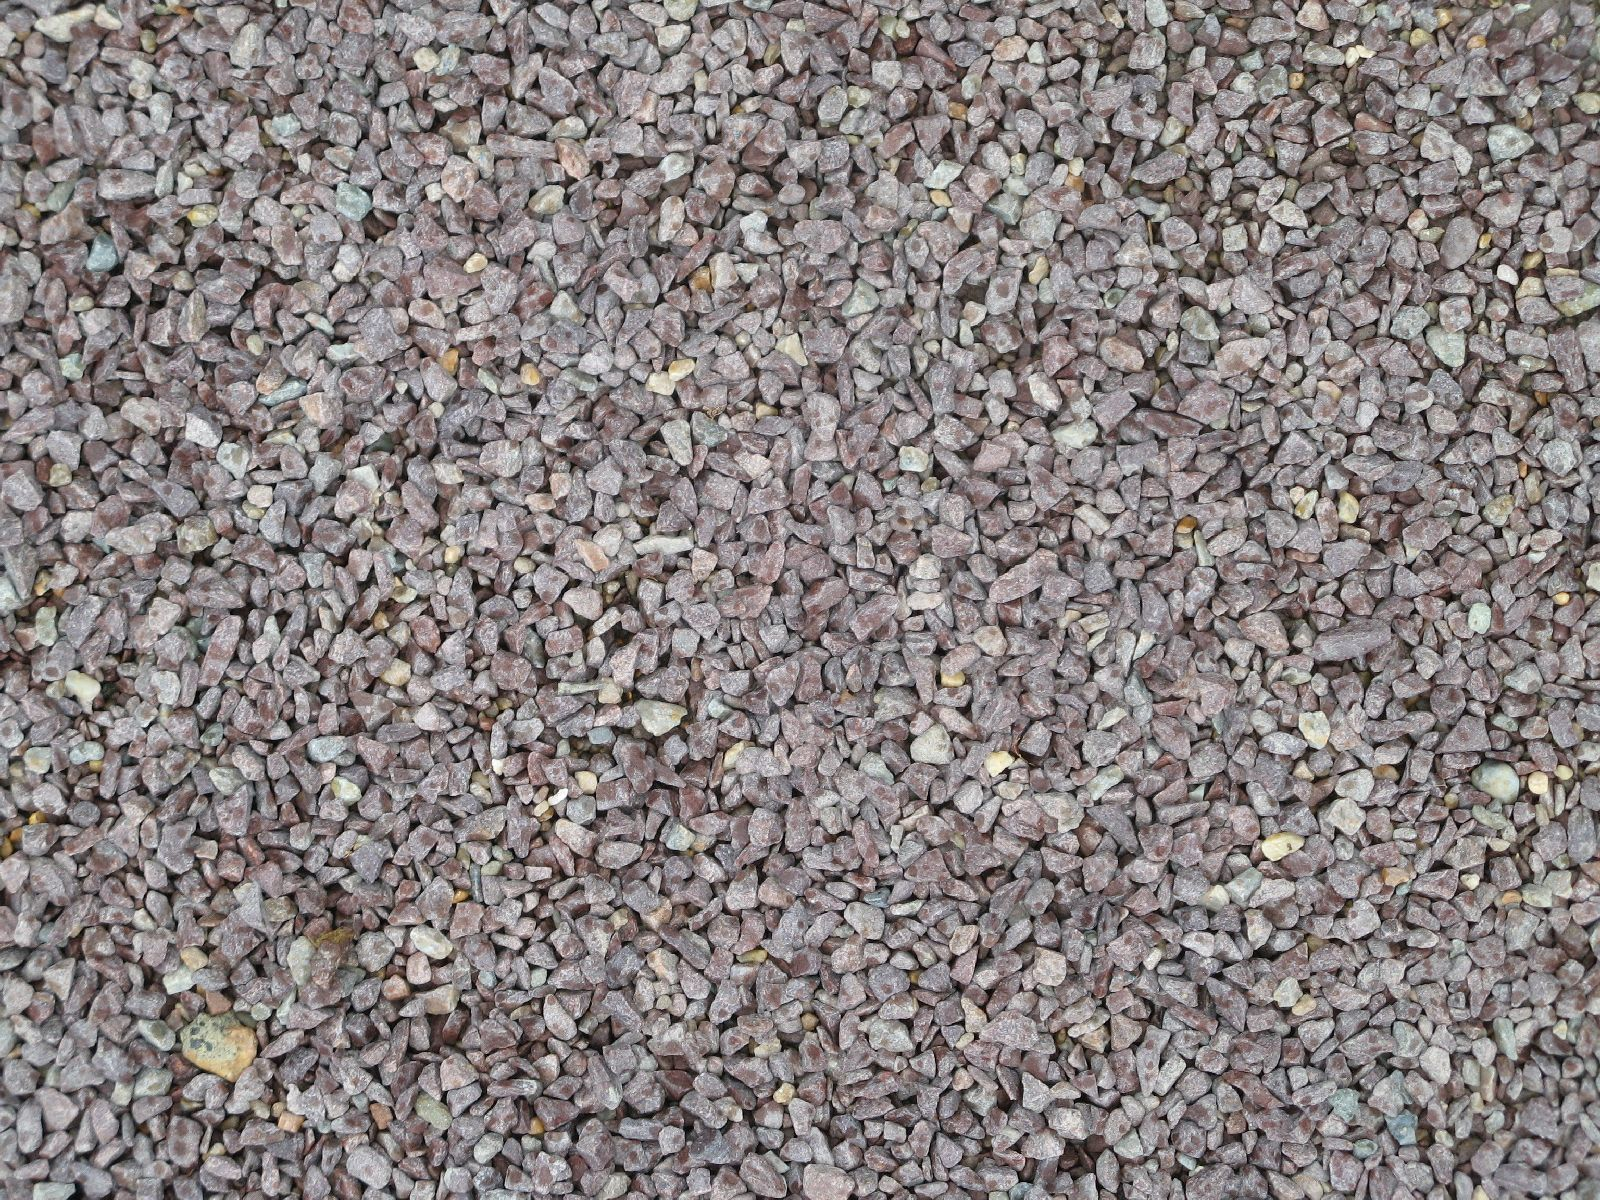 Ground-Nature_Texture_B_1646